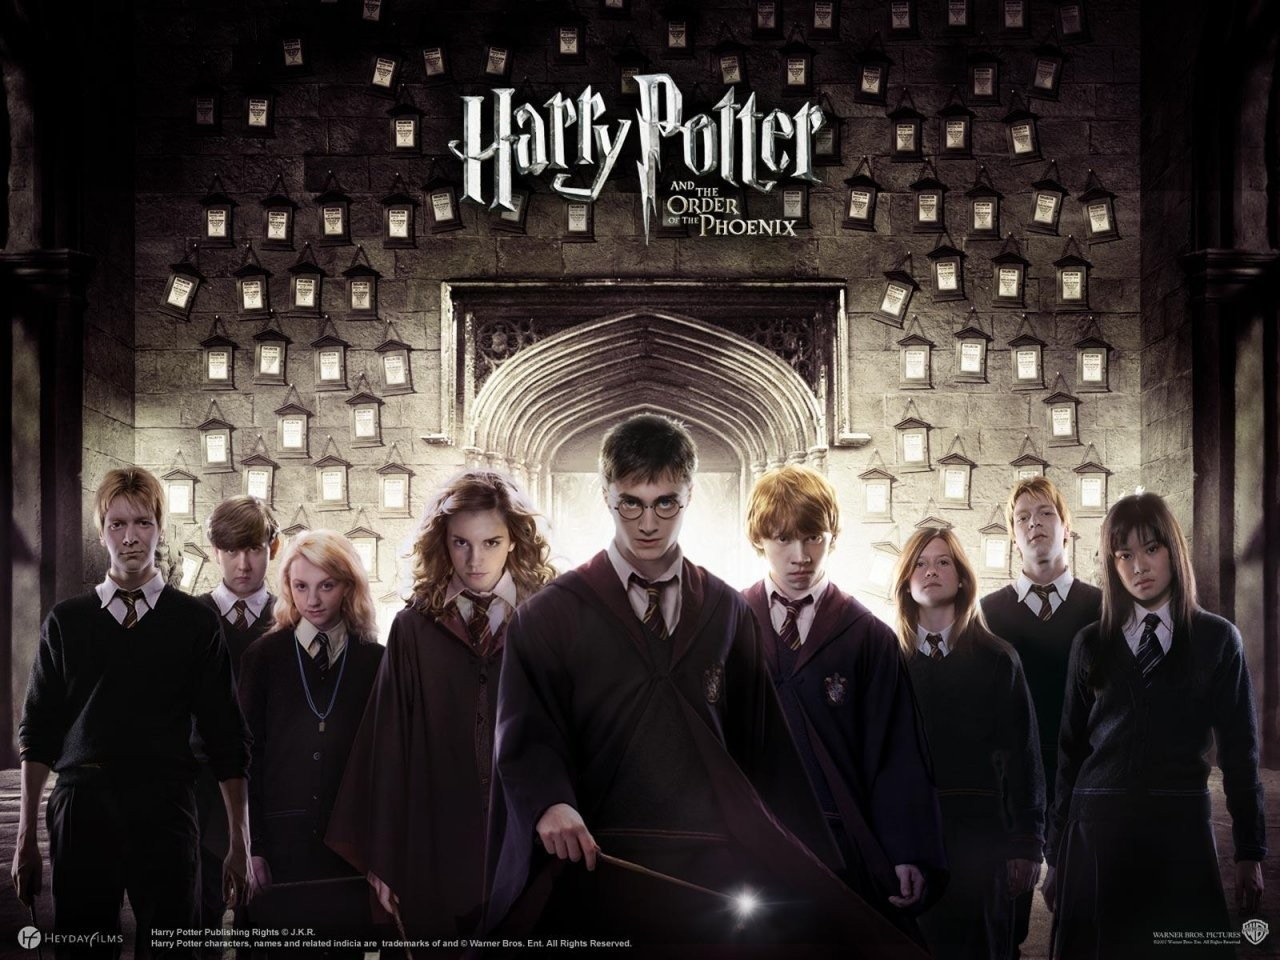 http://images1.wikia.nocookie.net/__cb20090704061234/harrypotter/images/6/61/Harry-Potter-the-Order-Phoenix-832.jpg